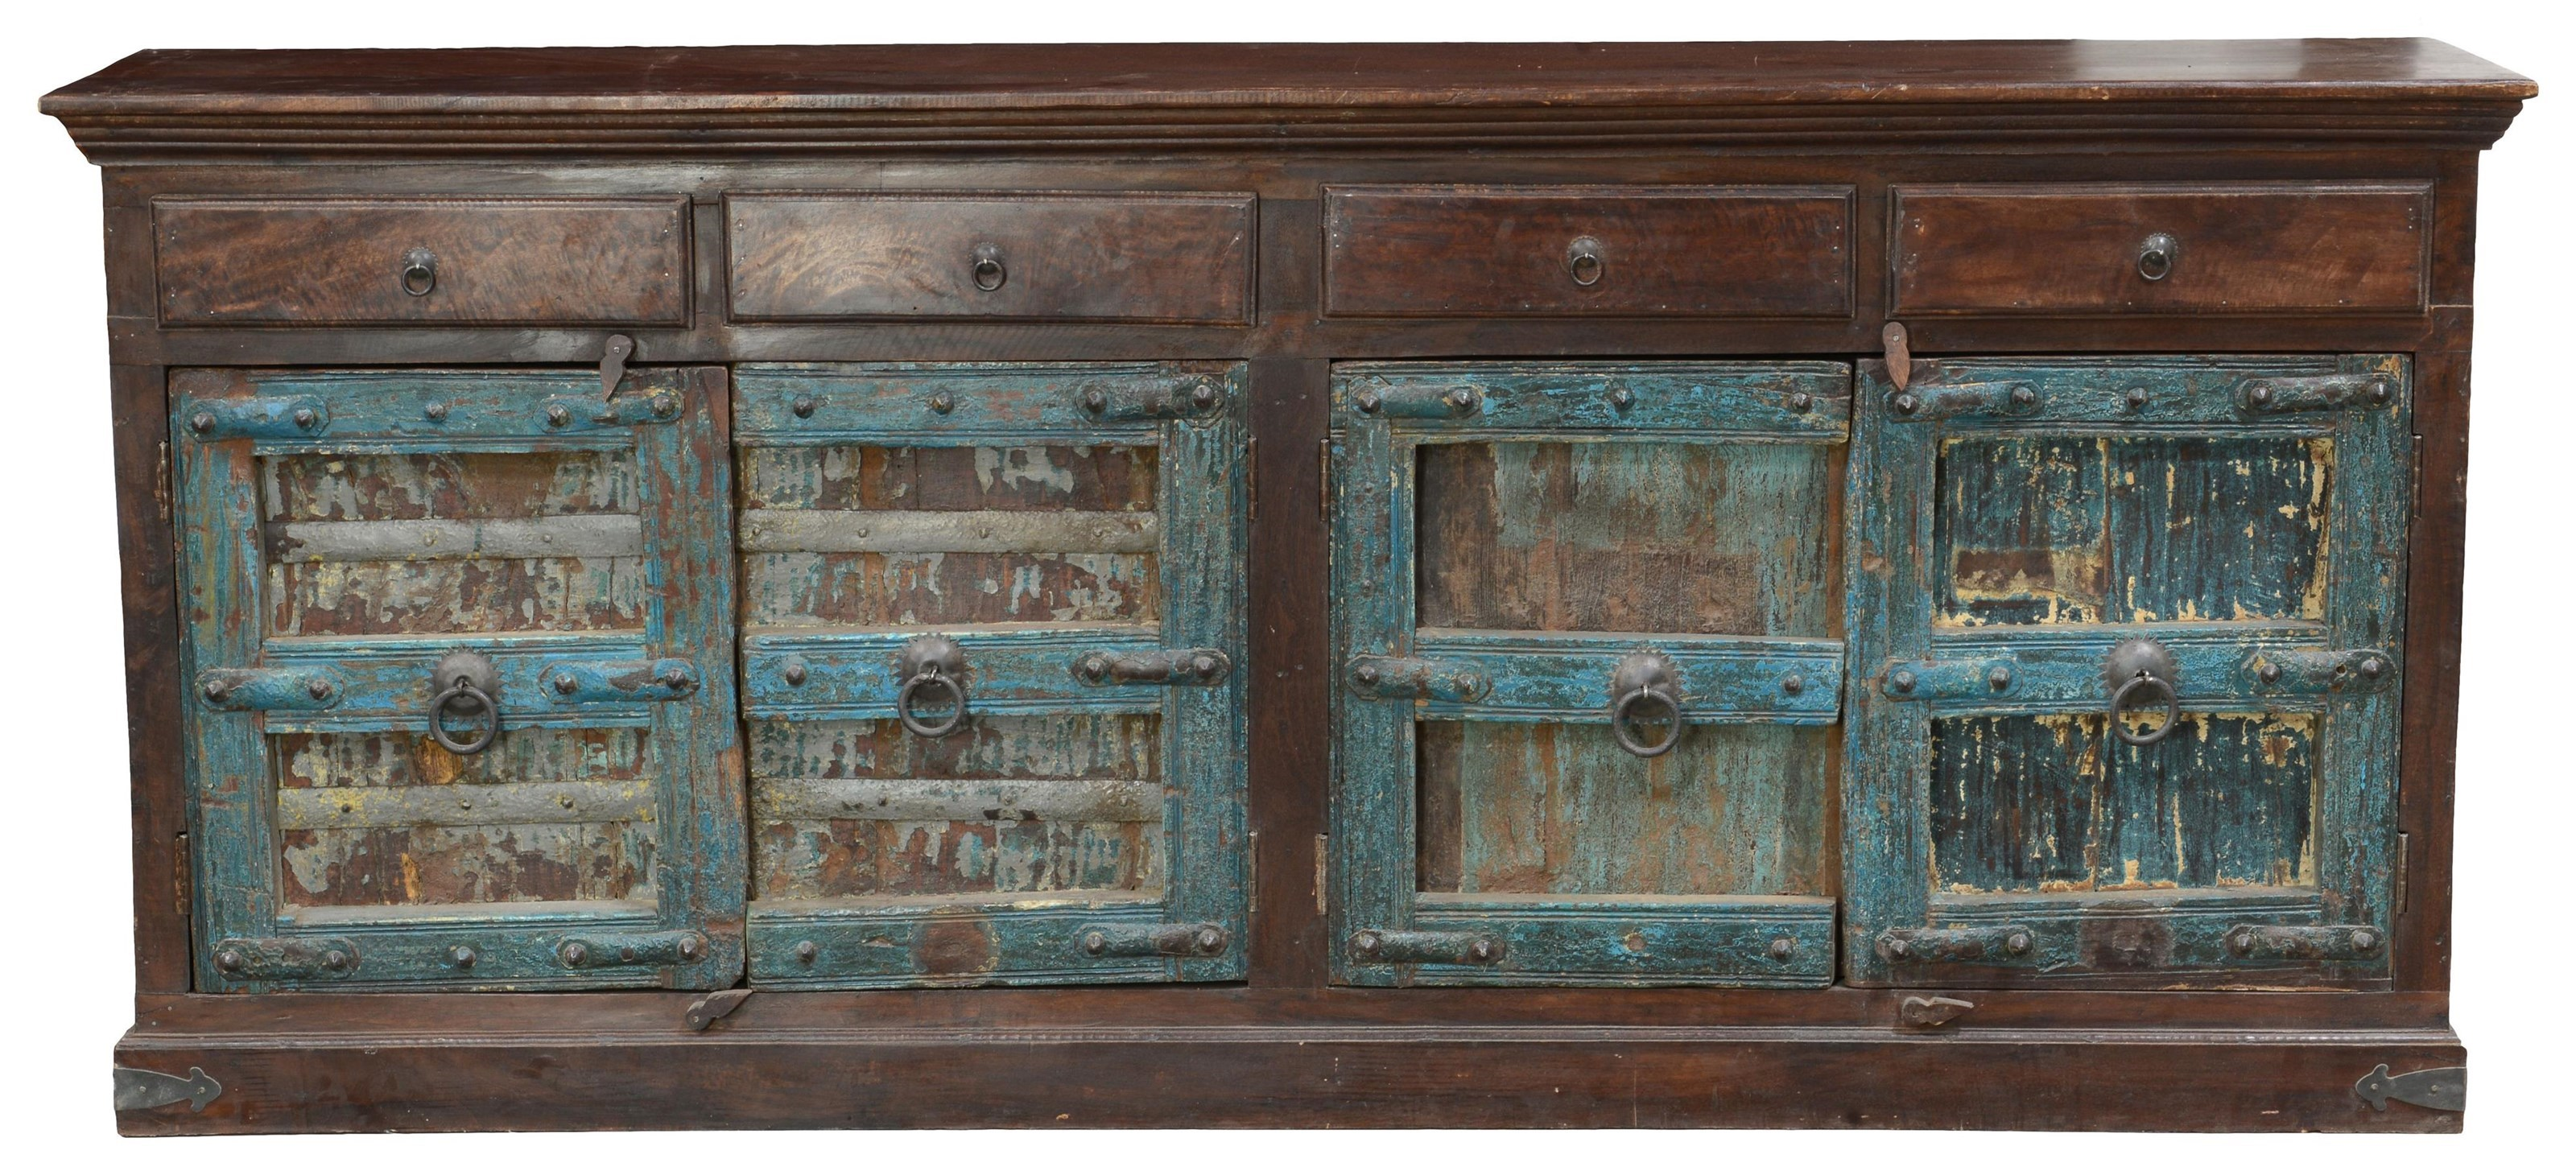 One of a Kind Sideboard with drawers and doors